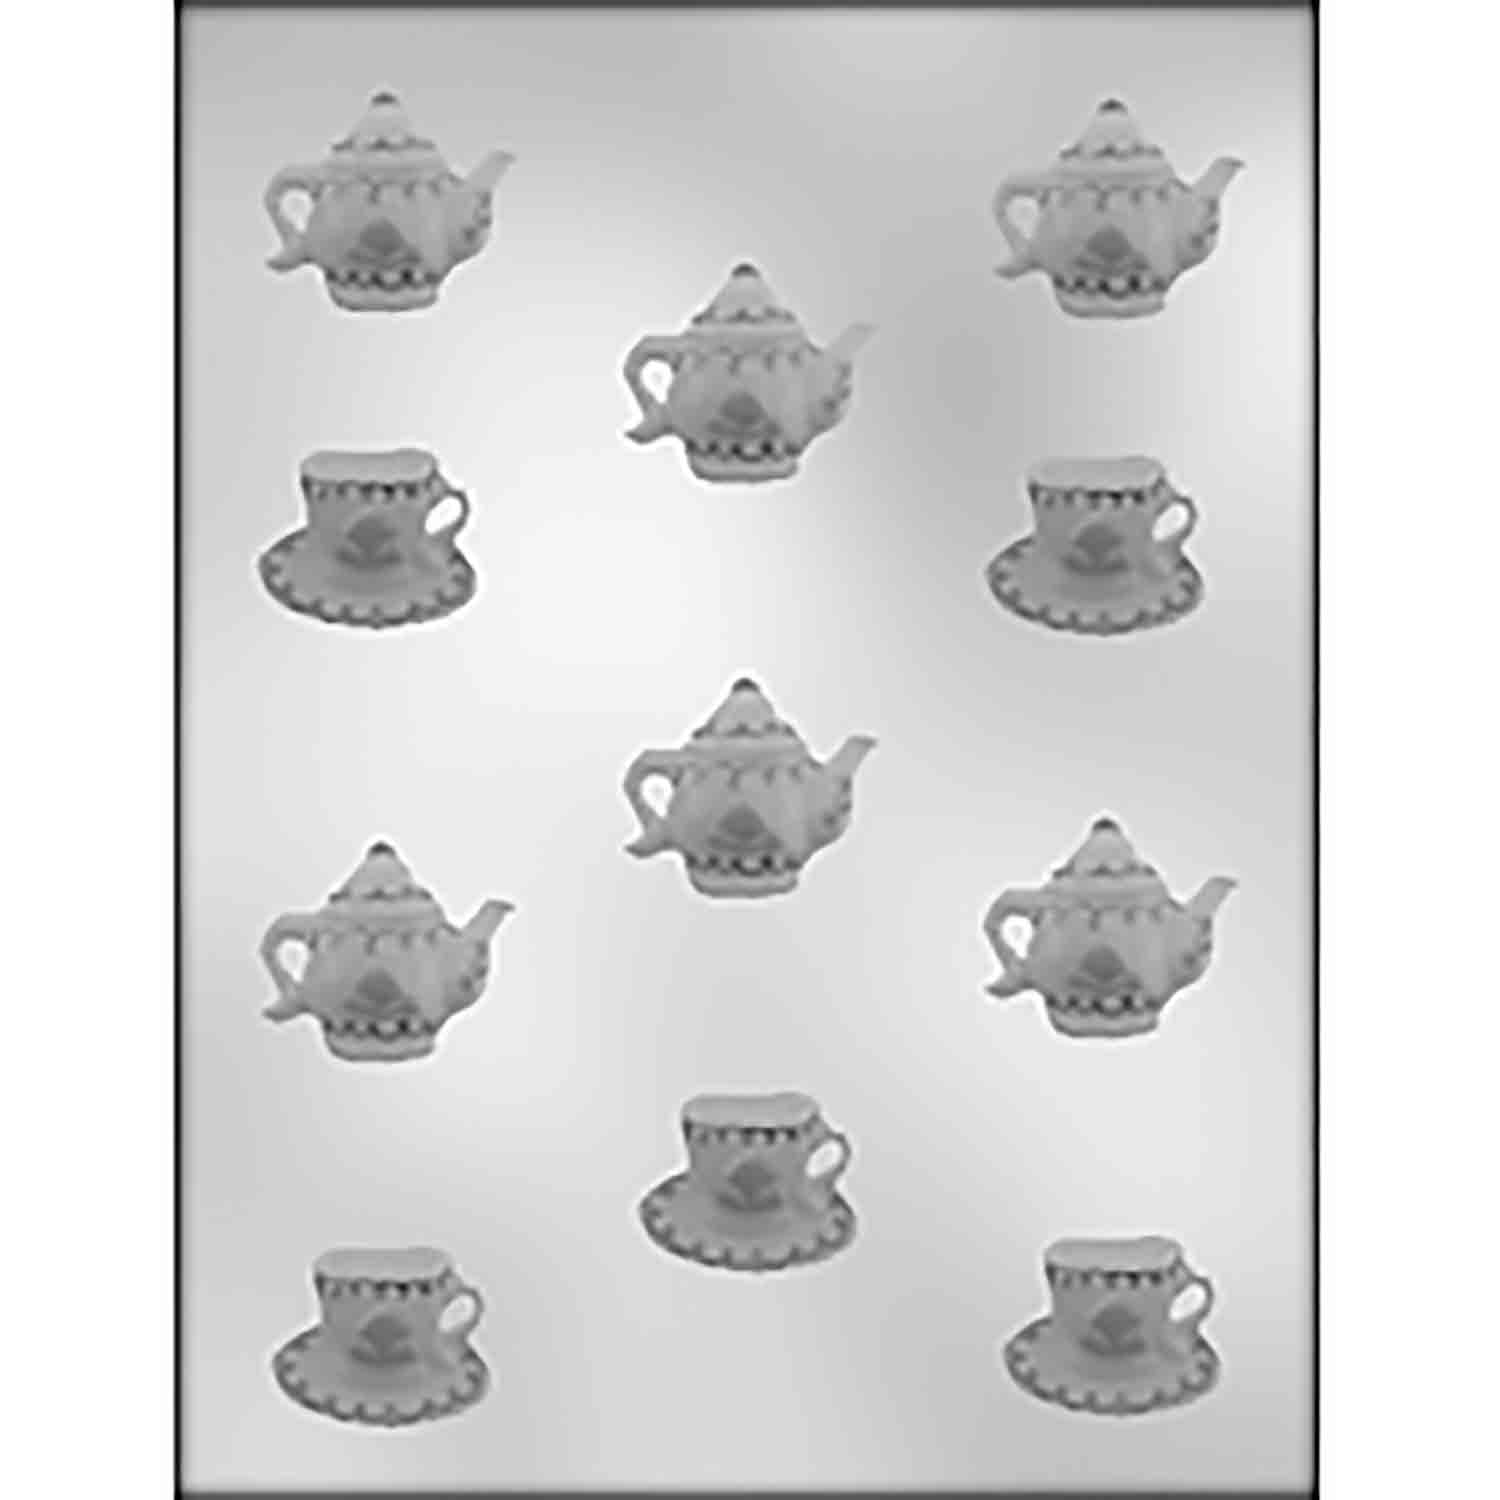 Cup, Saucer, & Teapot Chocolate Candy Mold